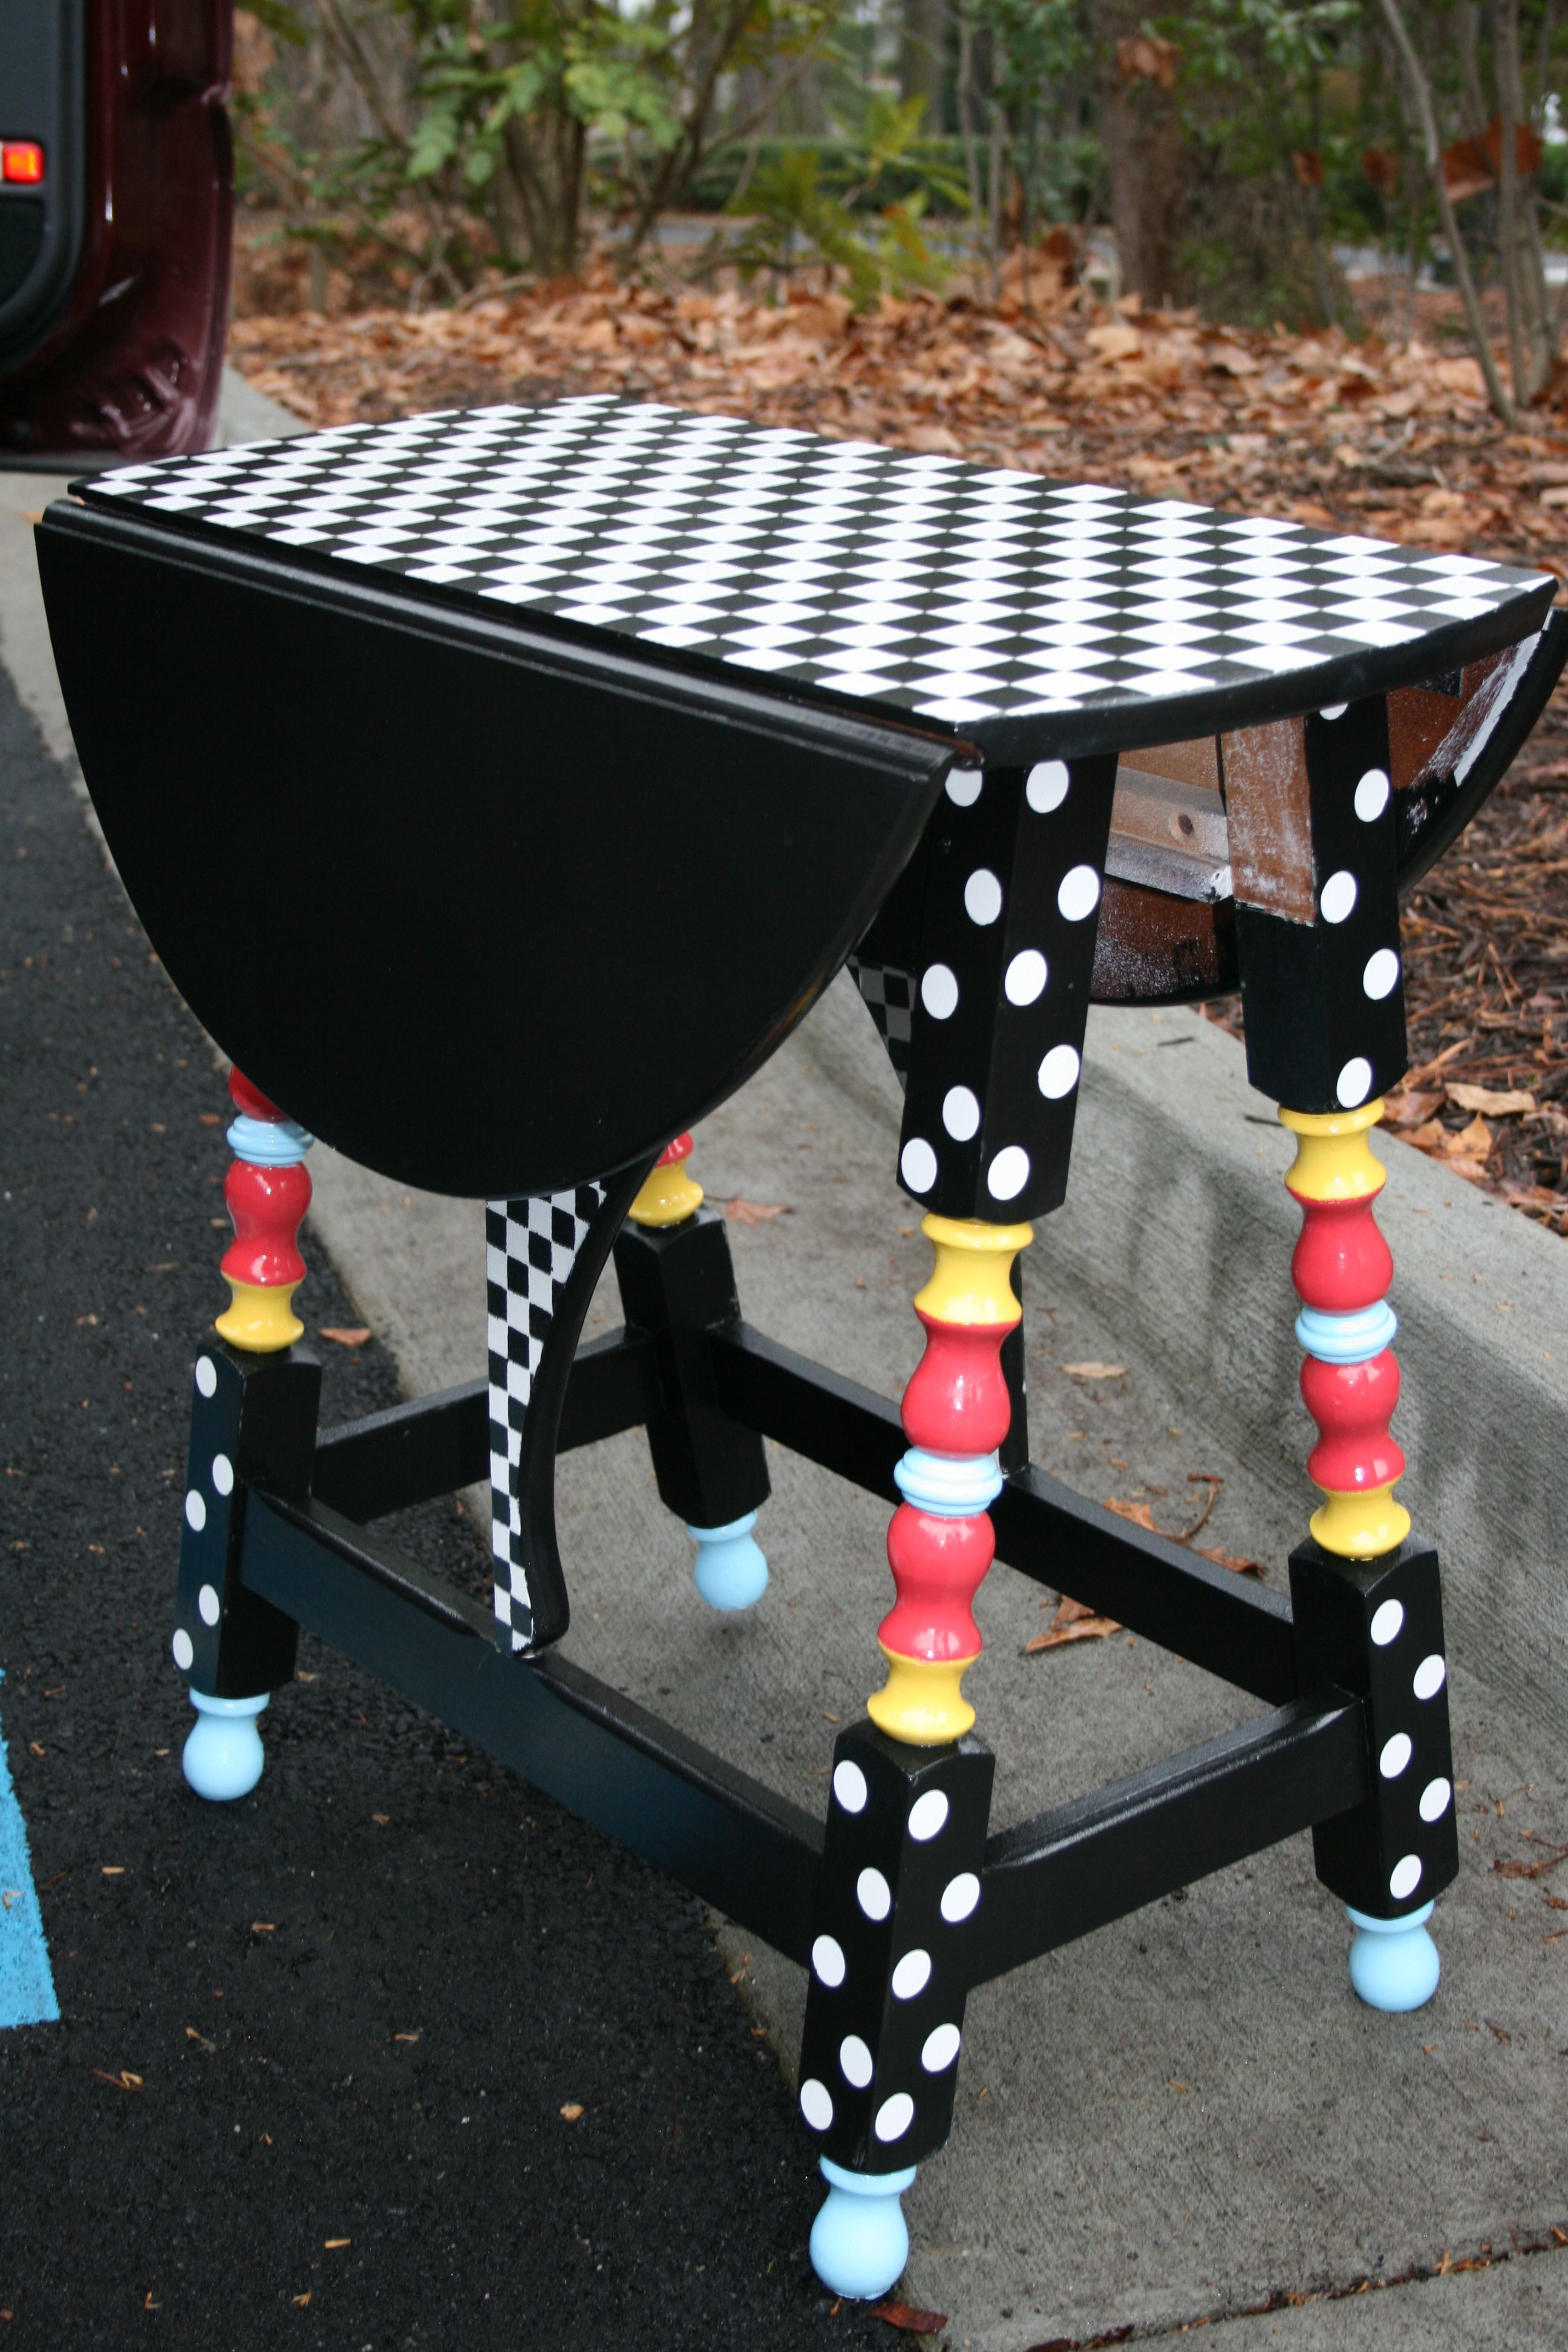 Find an old little table in a second hand or thrift store for Mobilia kitchen table